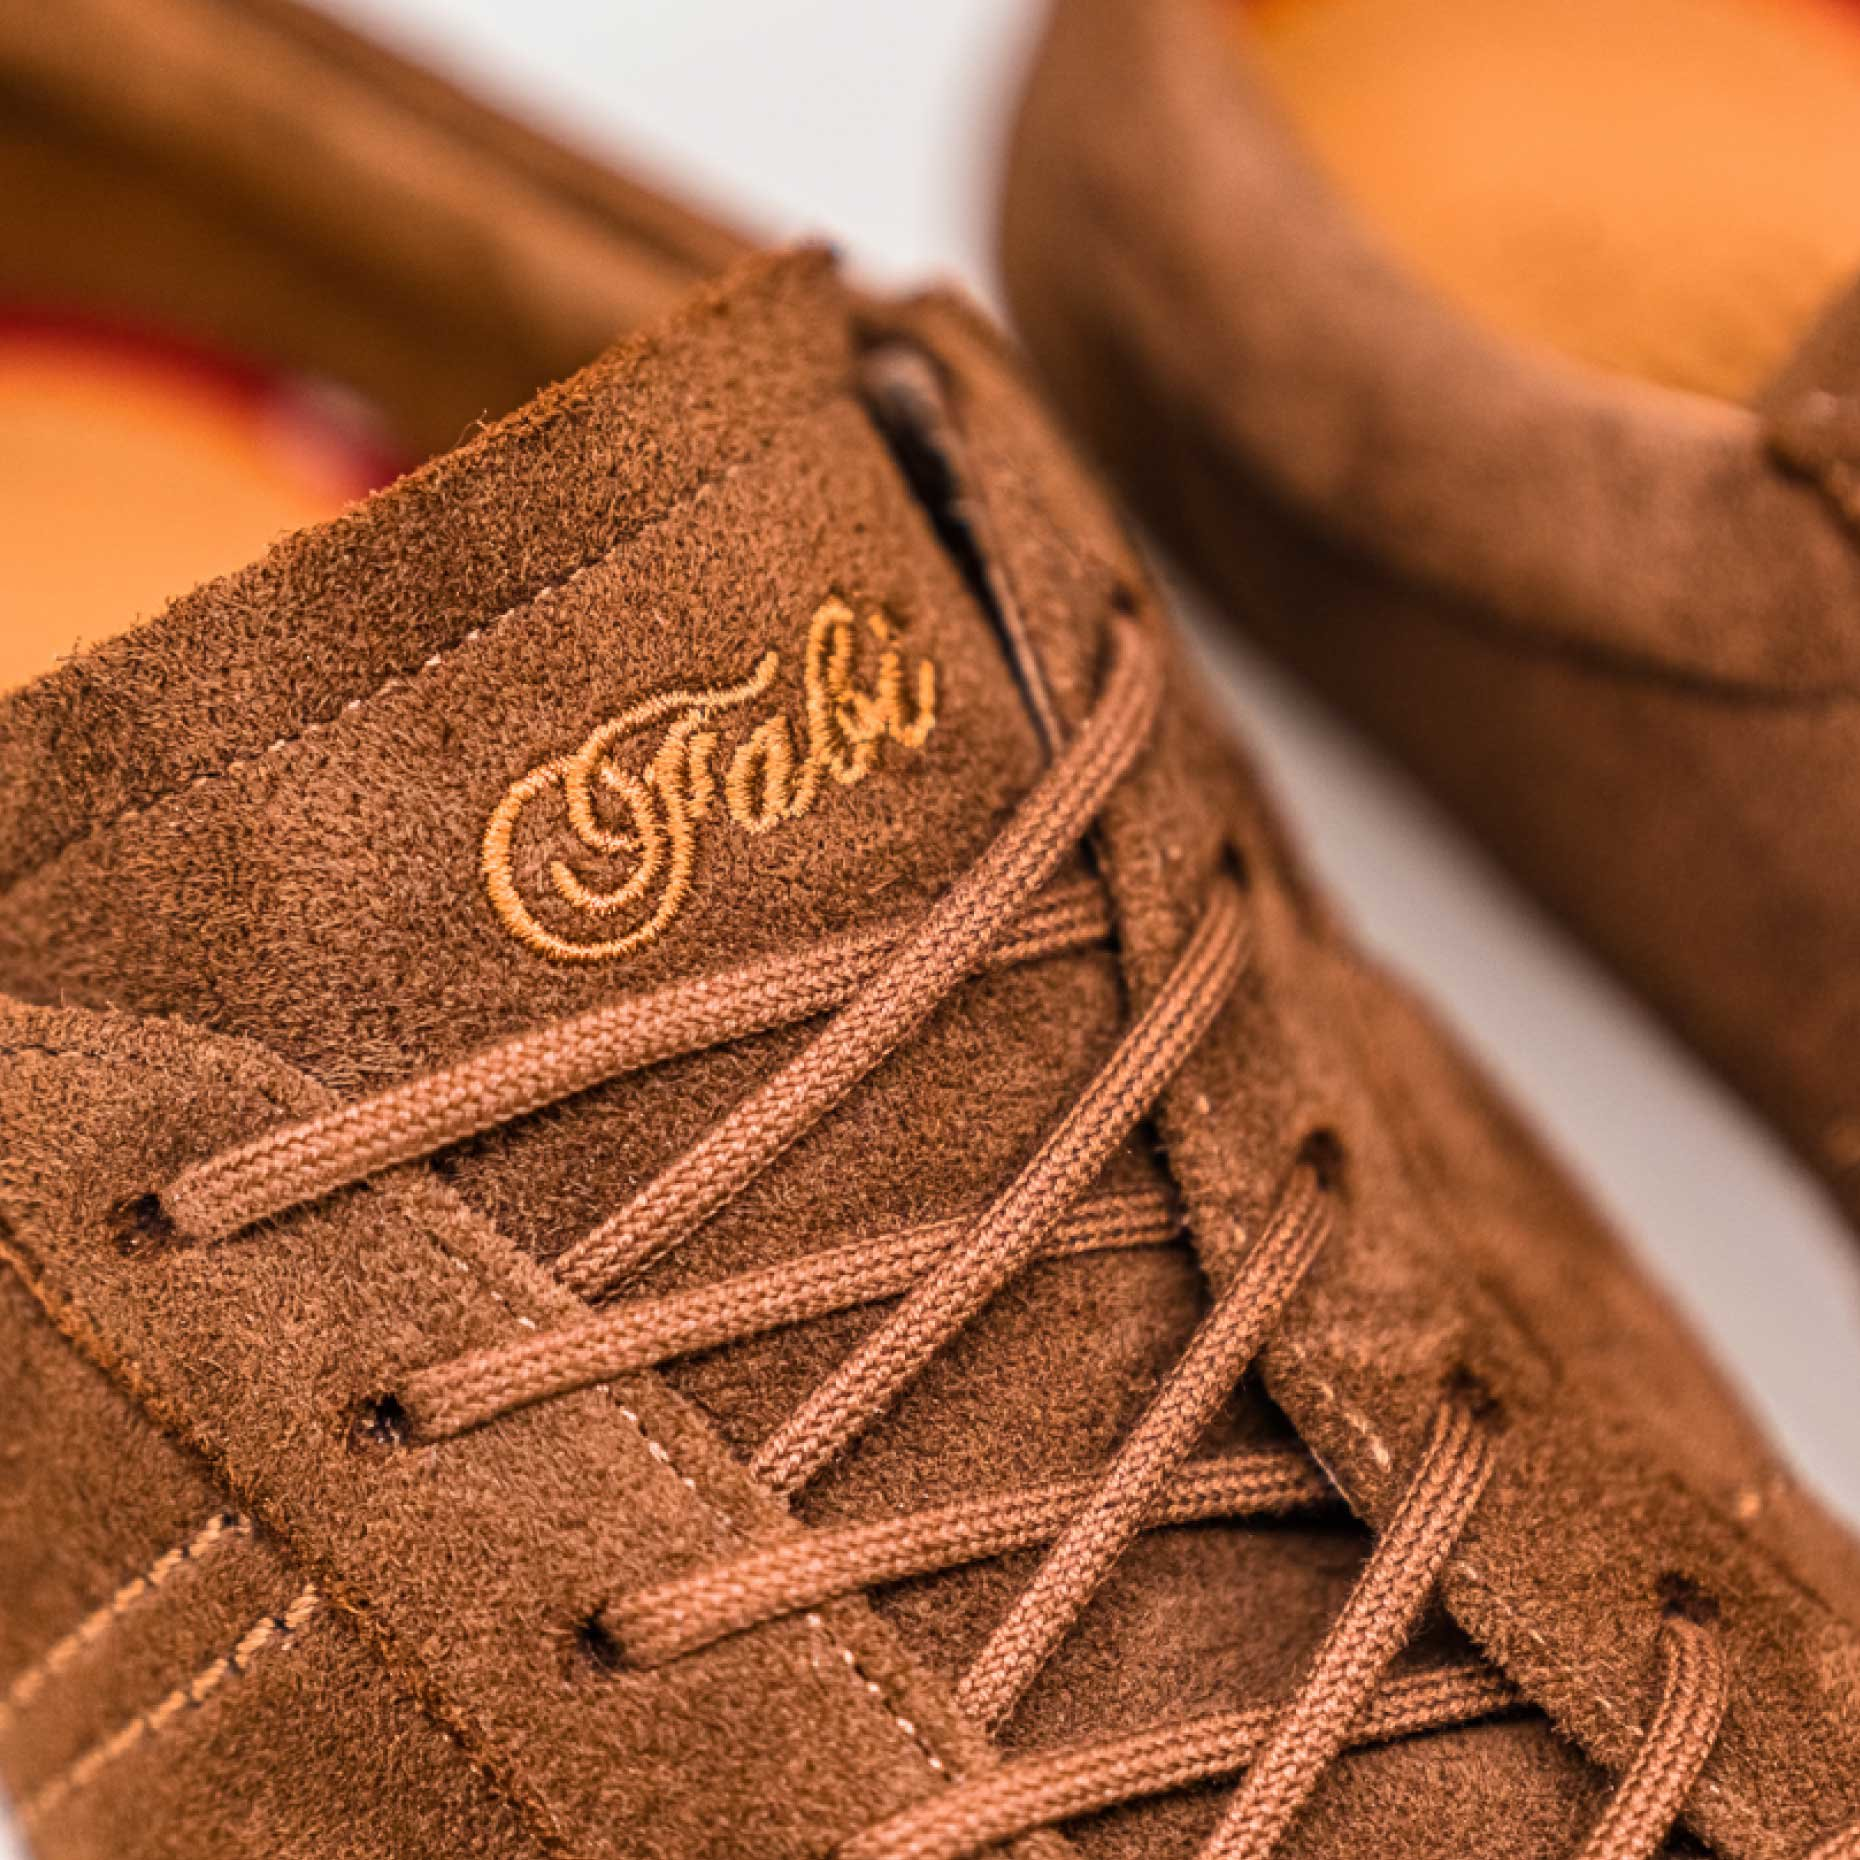 b19e27f99d5fbe The progressive involvement of the second generation of the Fabi Family has  infused Fabi with a new design spirit to complement its long-established ...